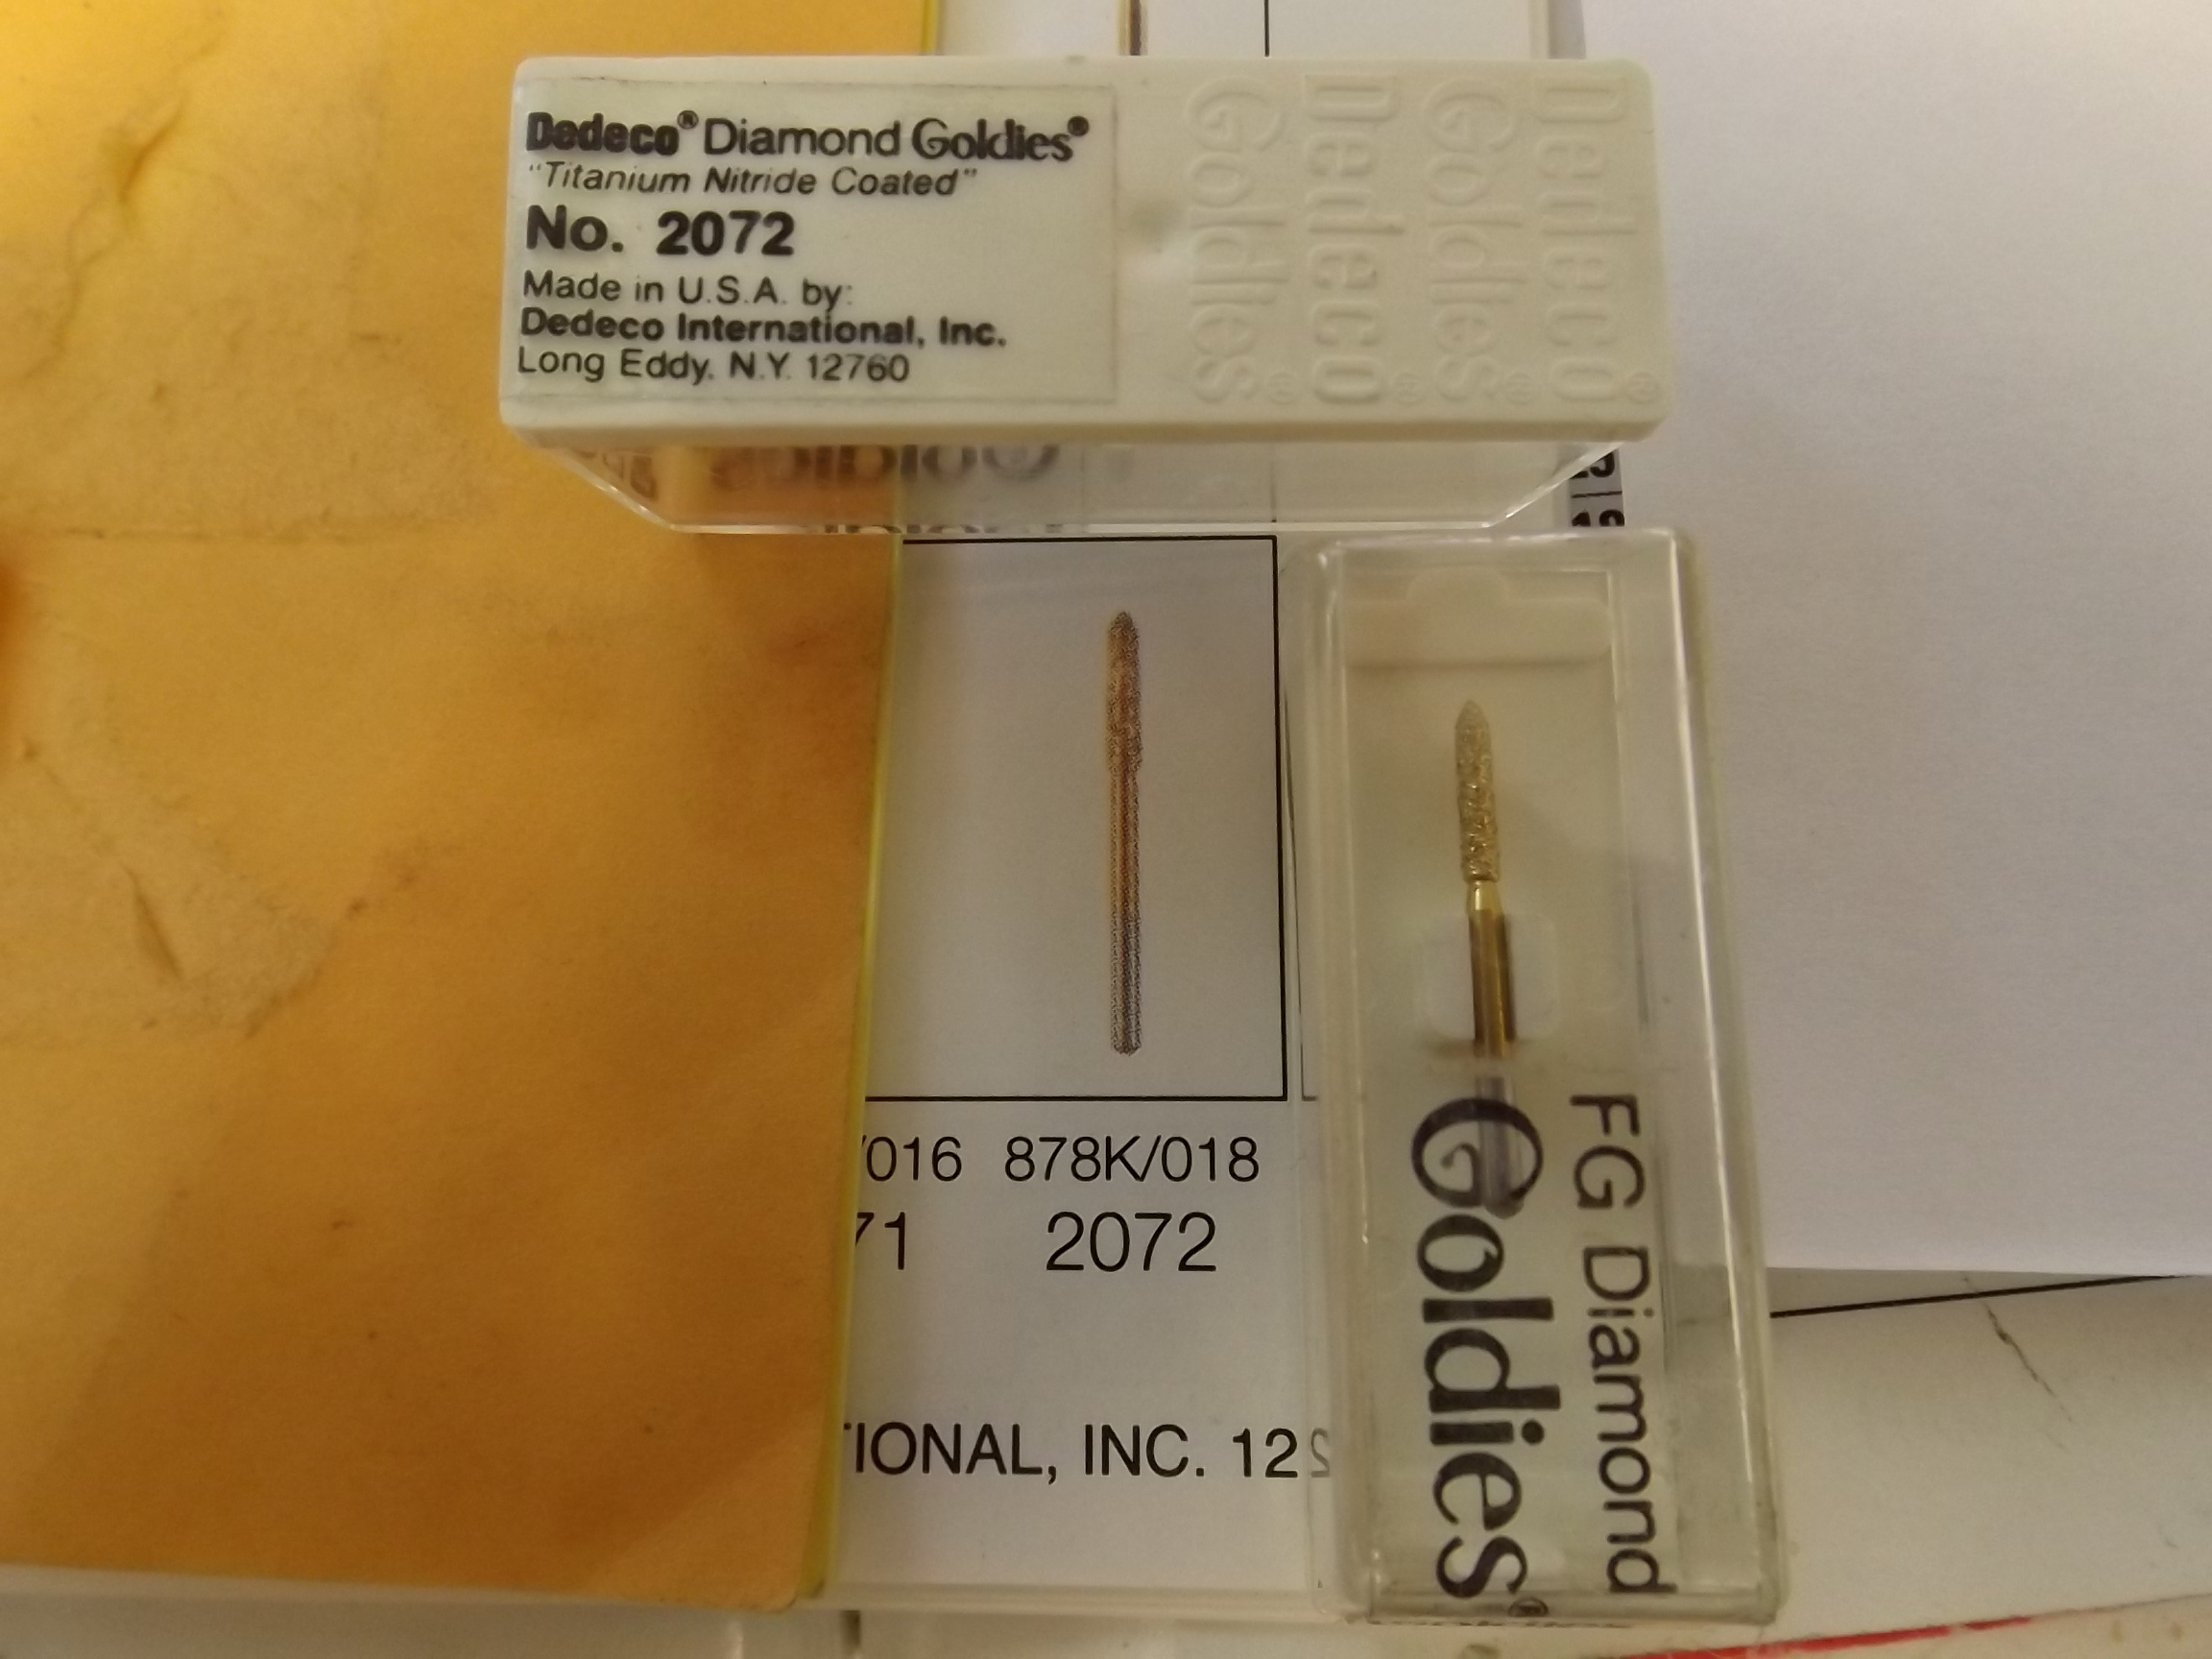 BR2072 Dedeco Diamond Goldies--Gingival Curettage--FG Shank- TWO Only! Dental